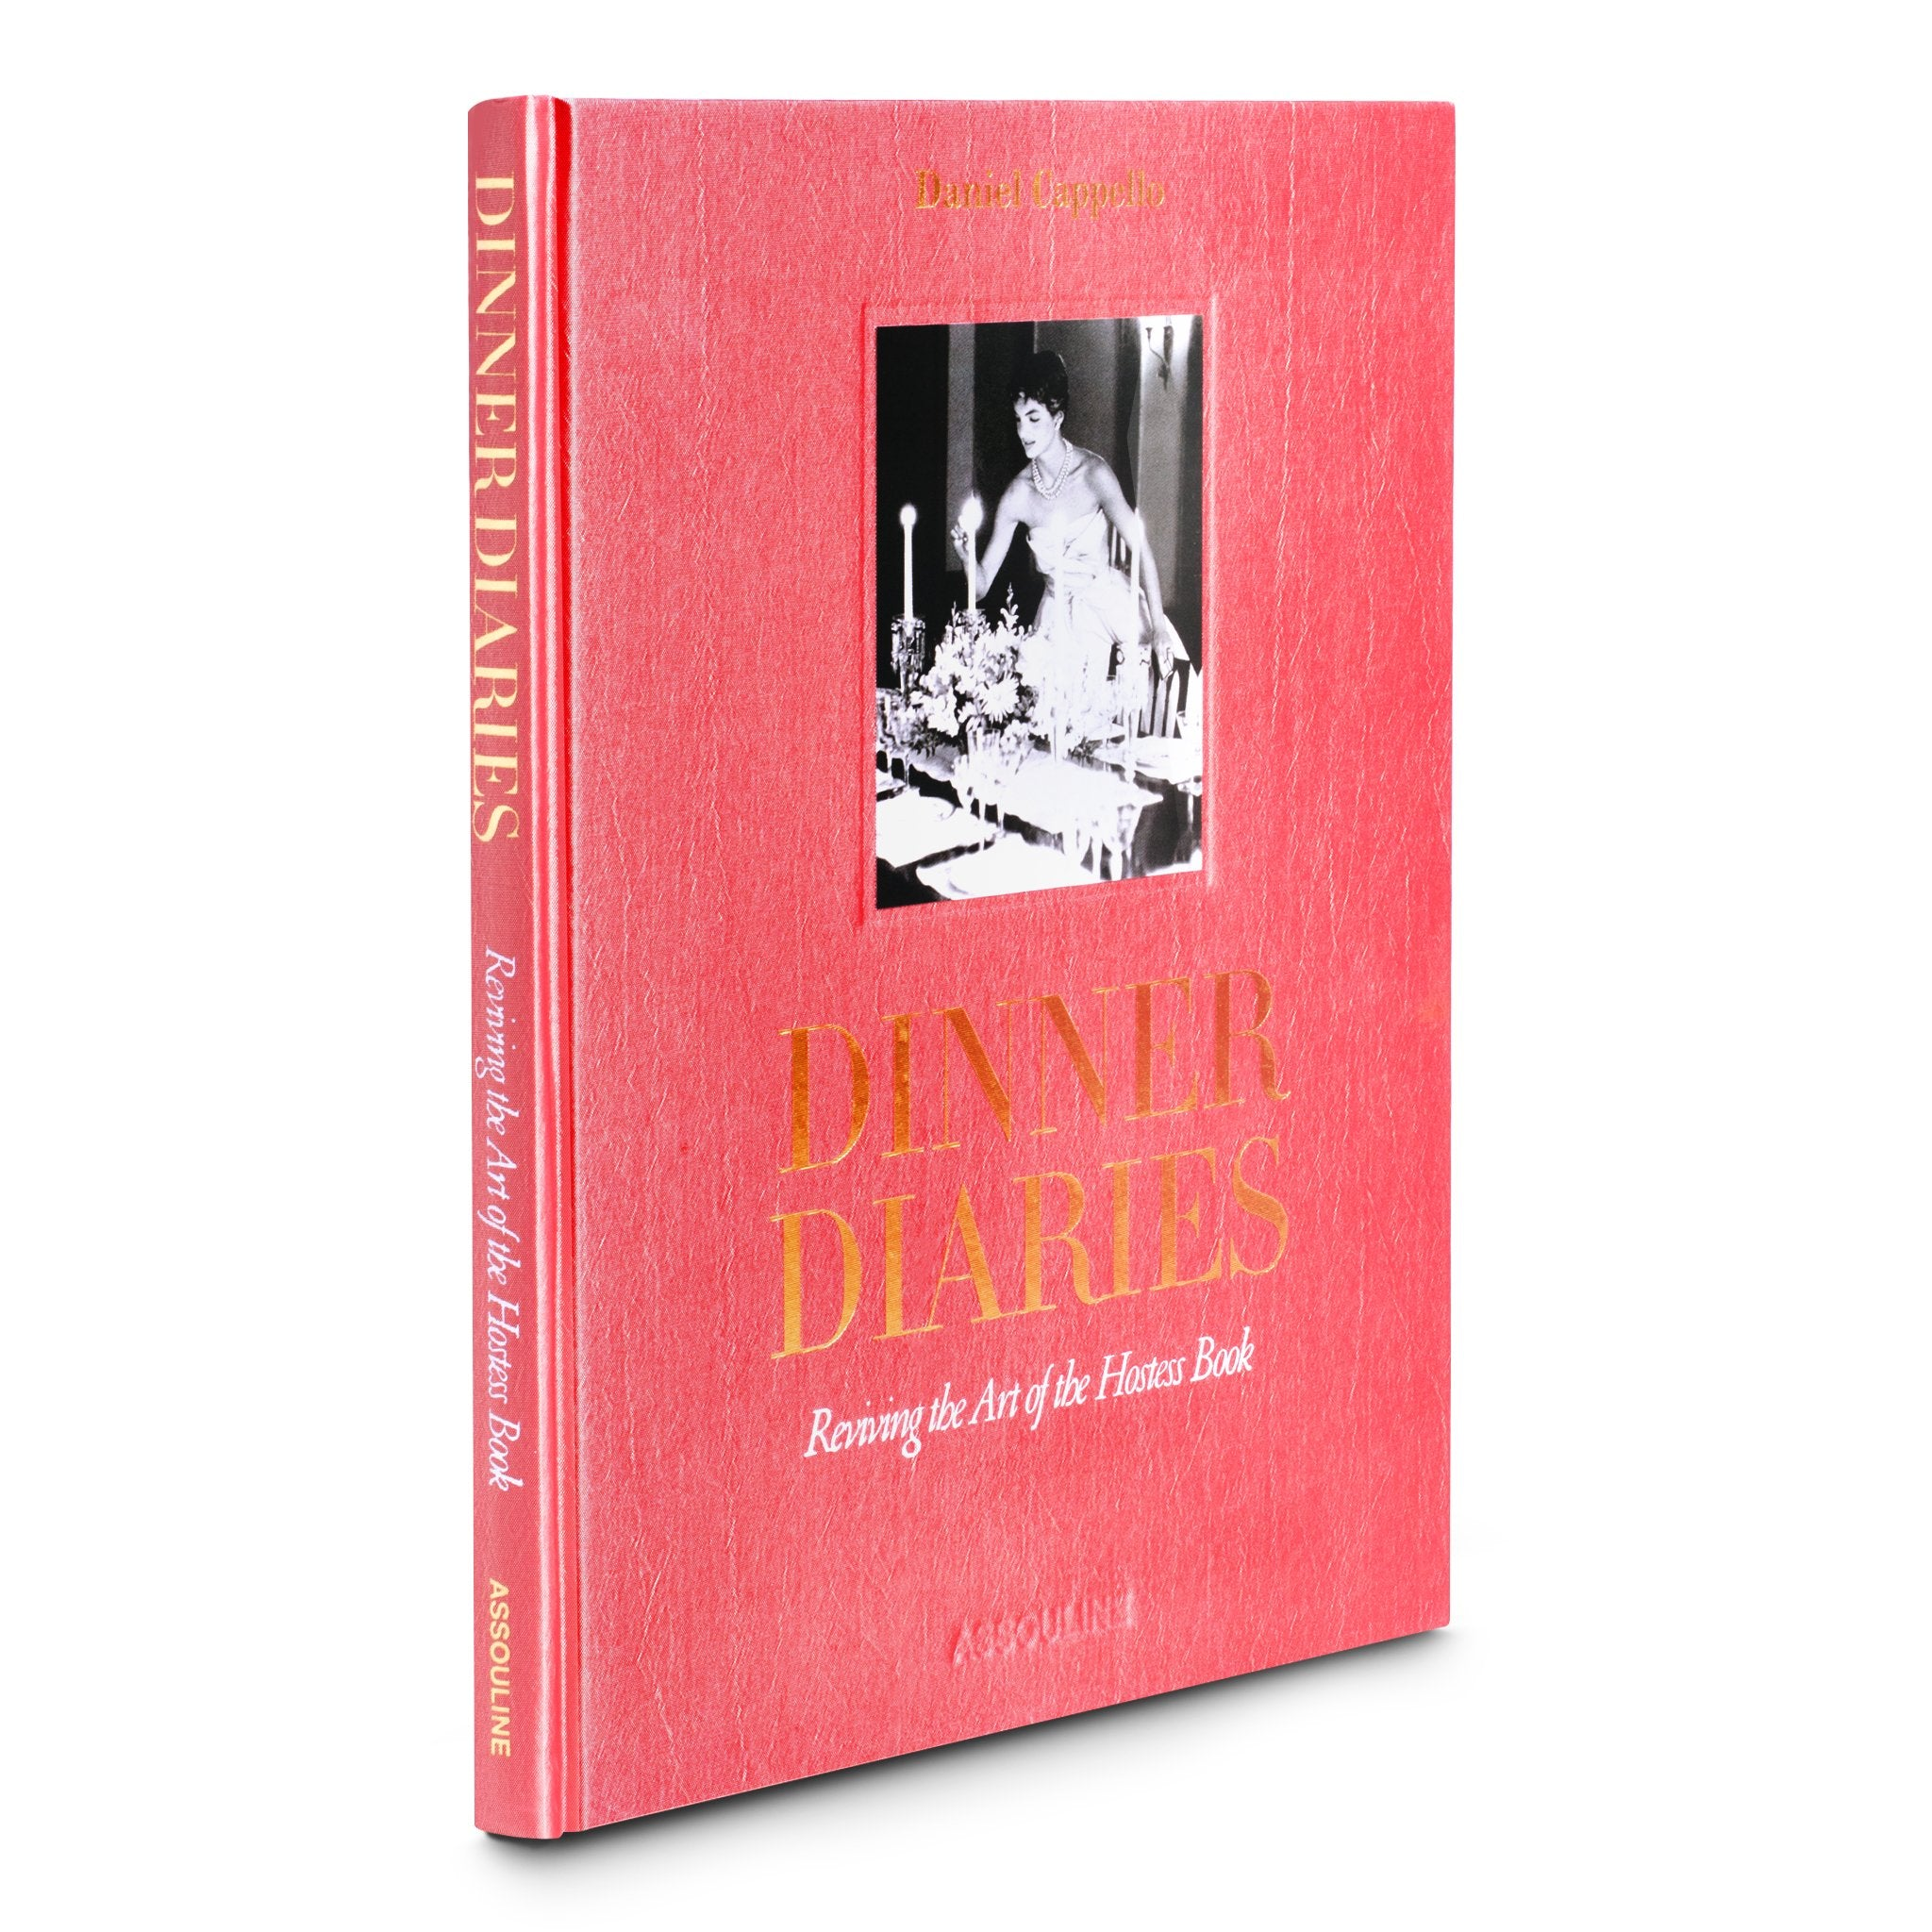 dinner diaries book by daniel cappello assouline